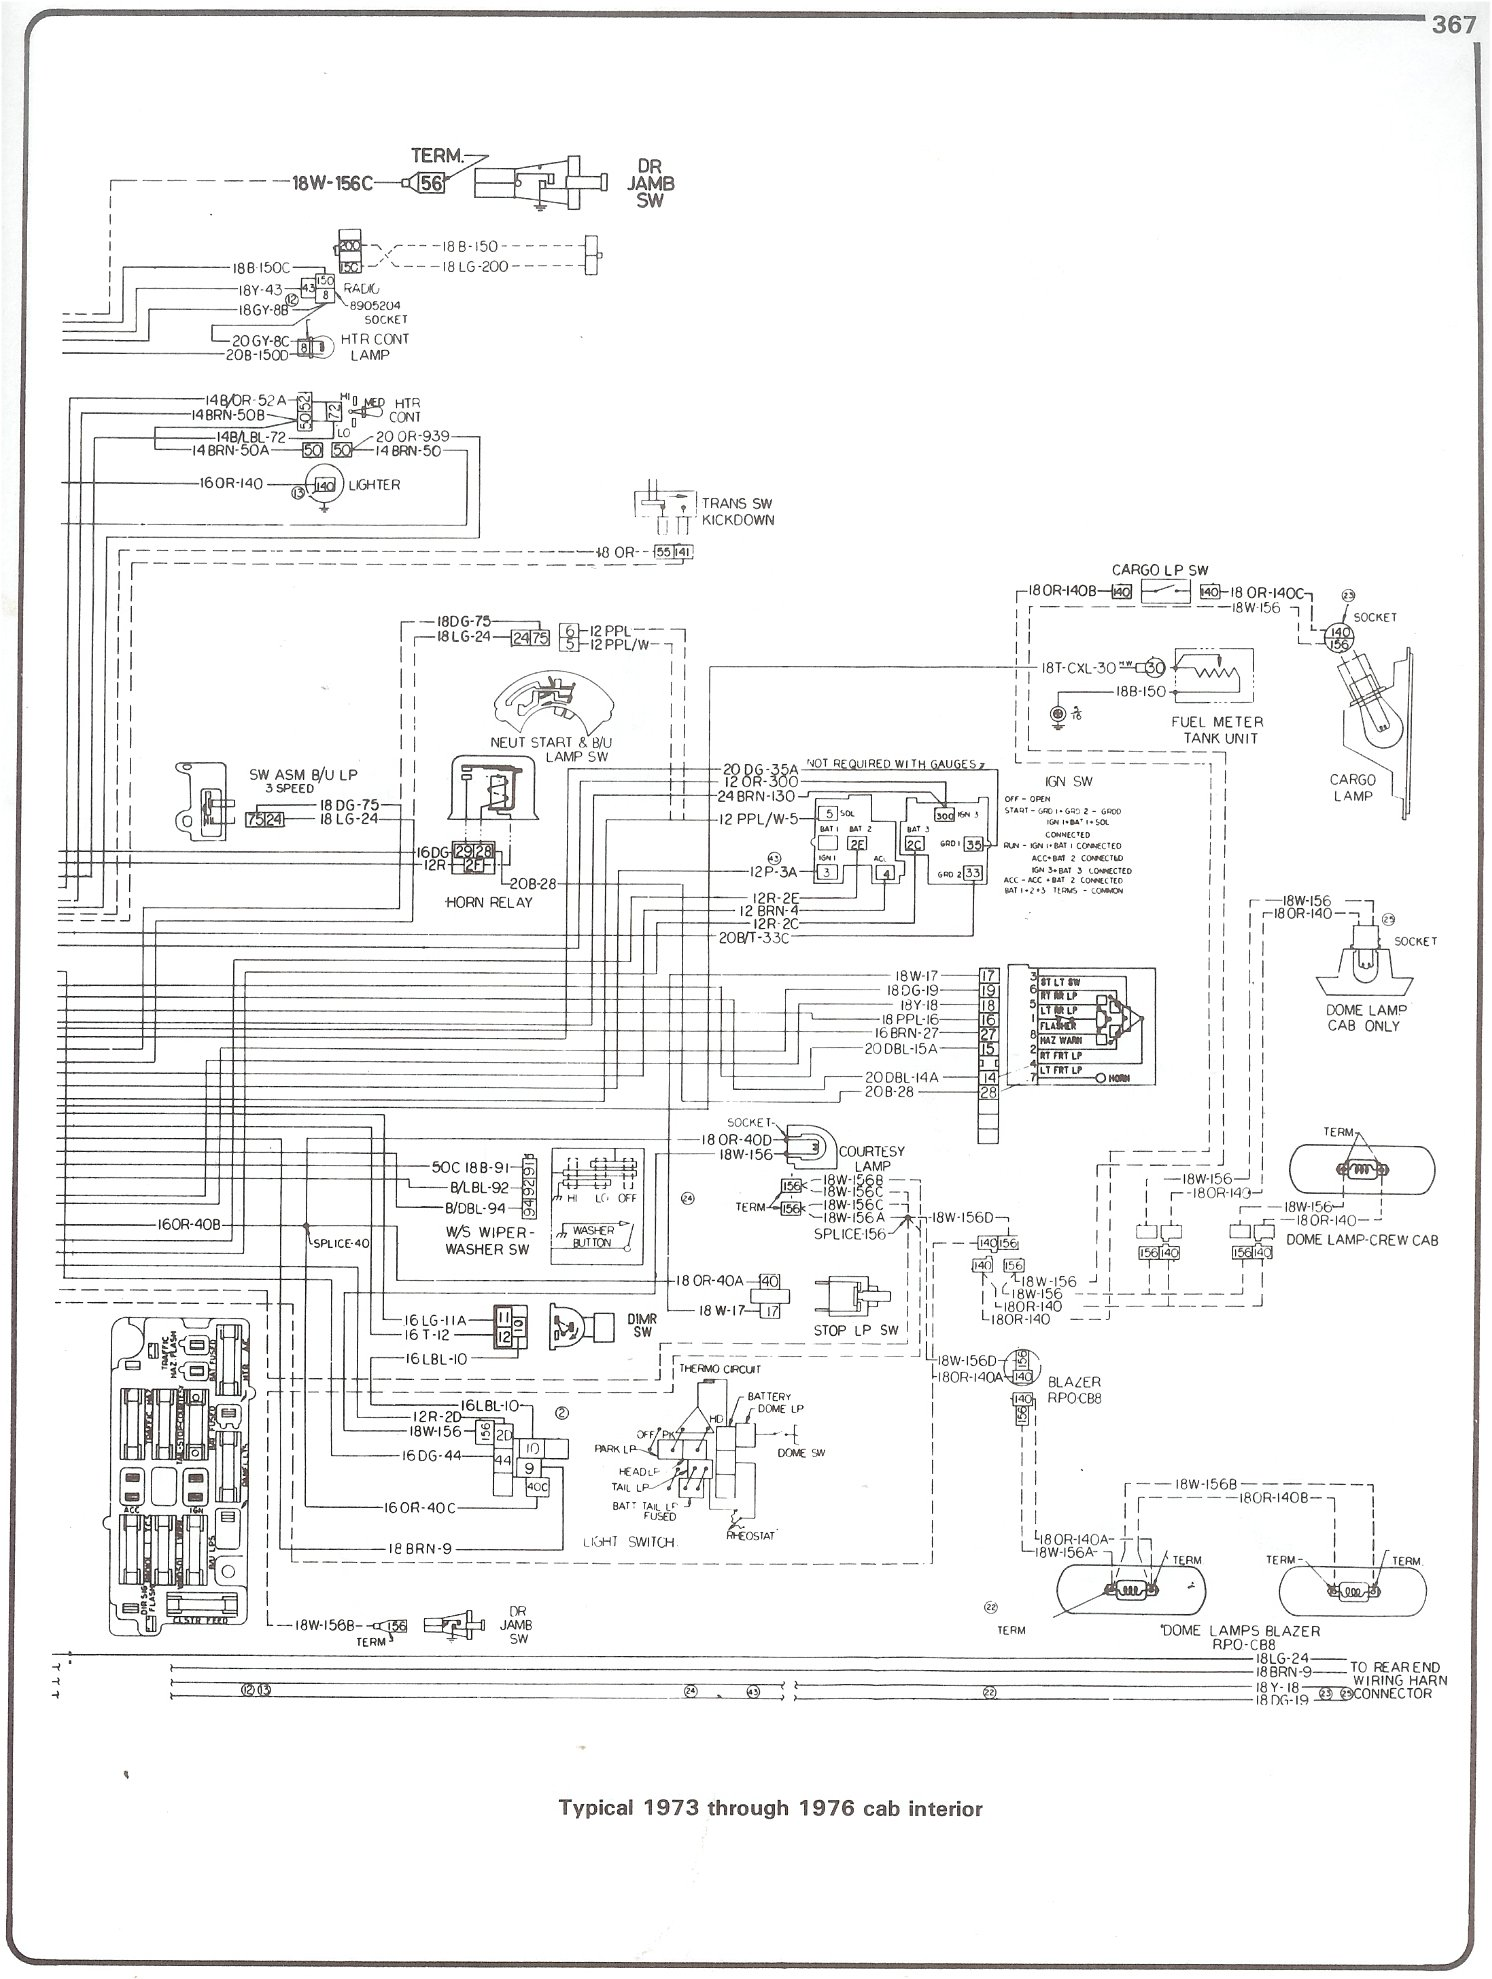 Chevy Wiring Harness Diagram from www.73-87chevytrucks.com